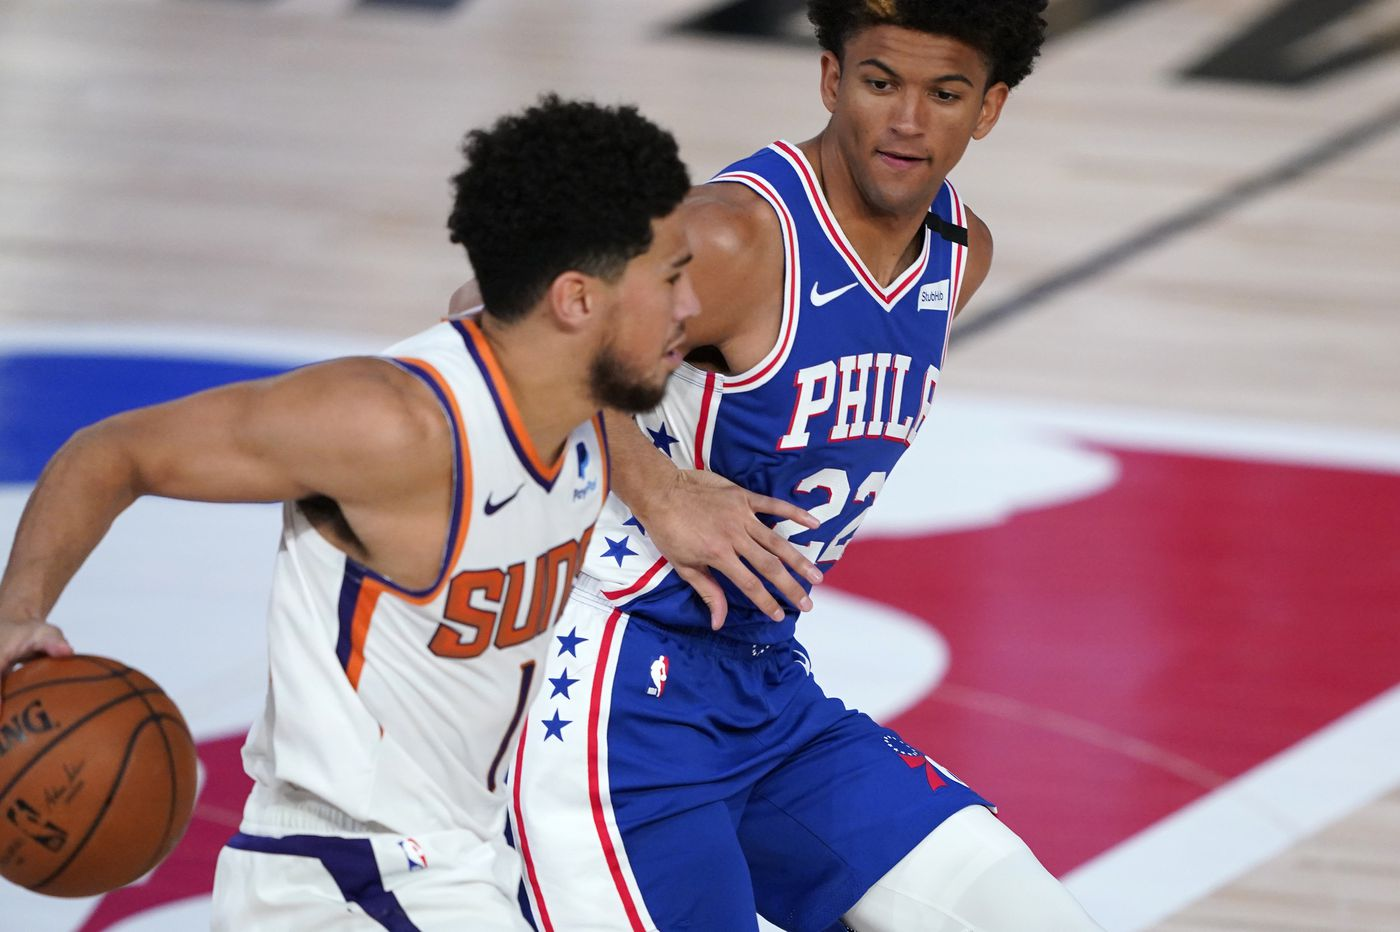 Observations from Sixers-Suns: Thybulle's defense on Devin Booker, Alec Burks' explosion, Kyle O'Quinn's presence